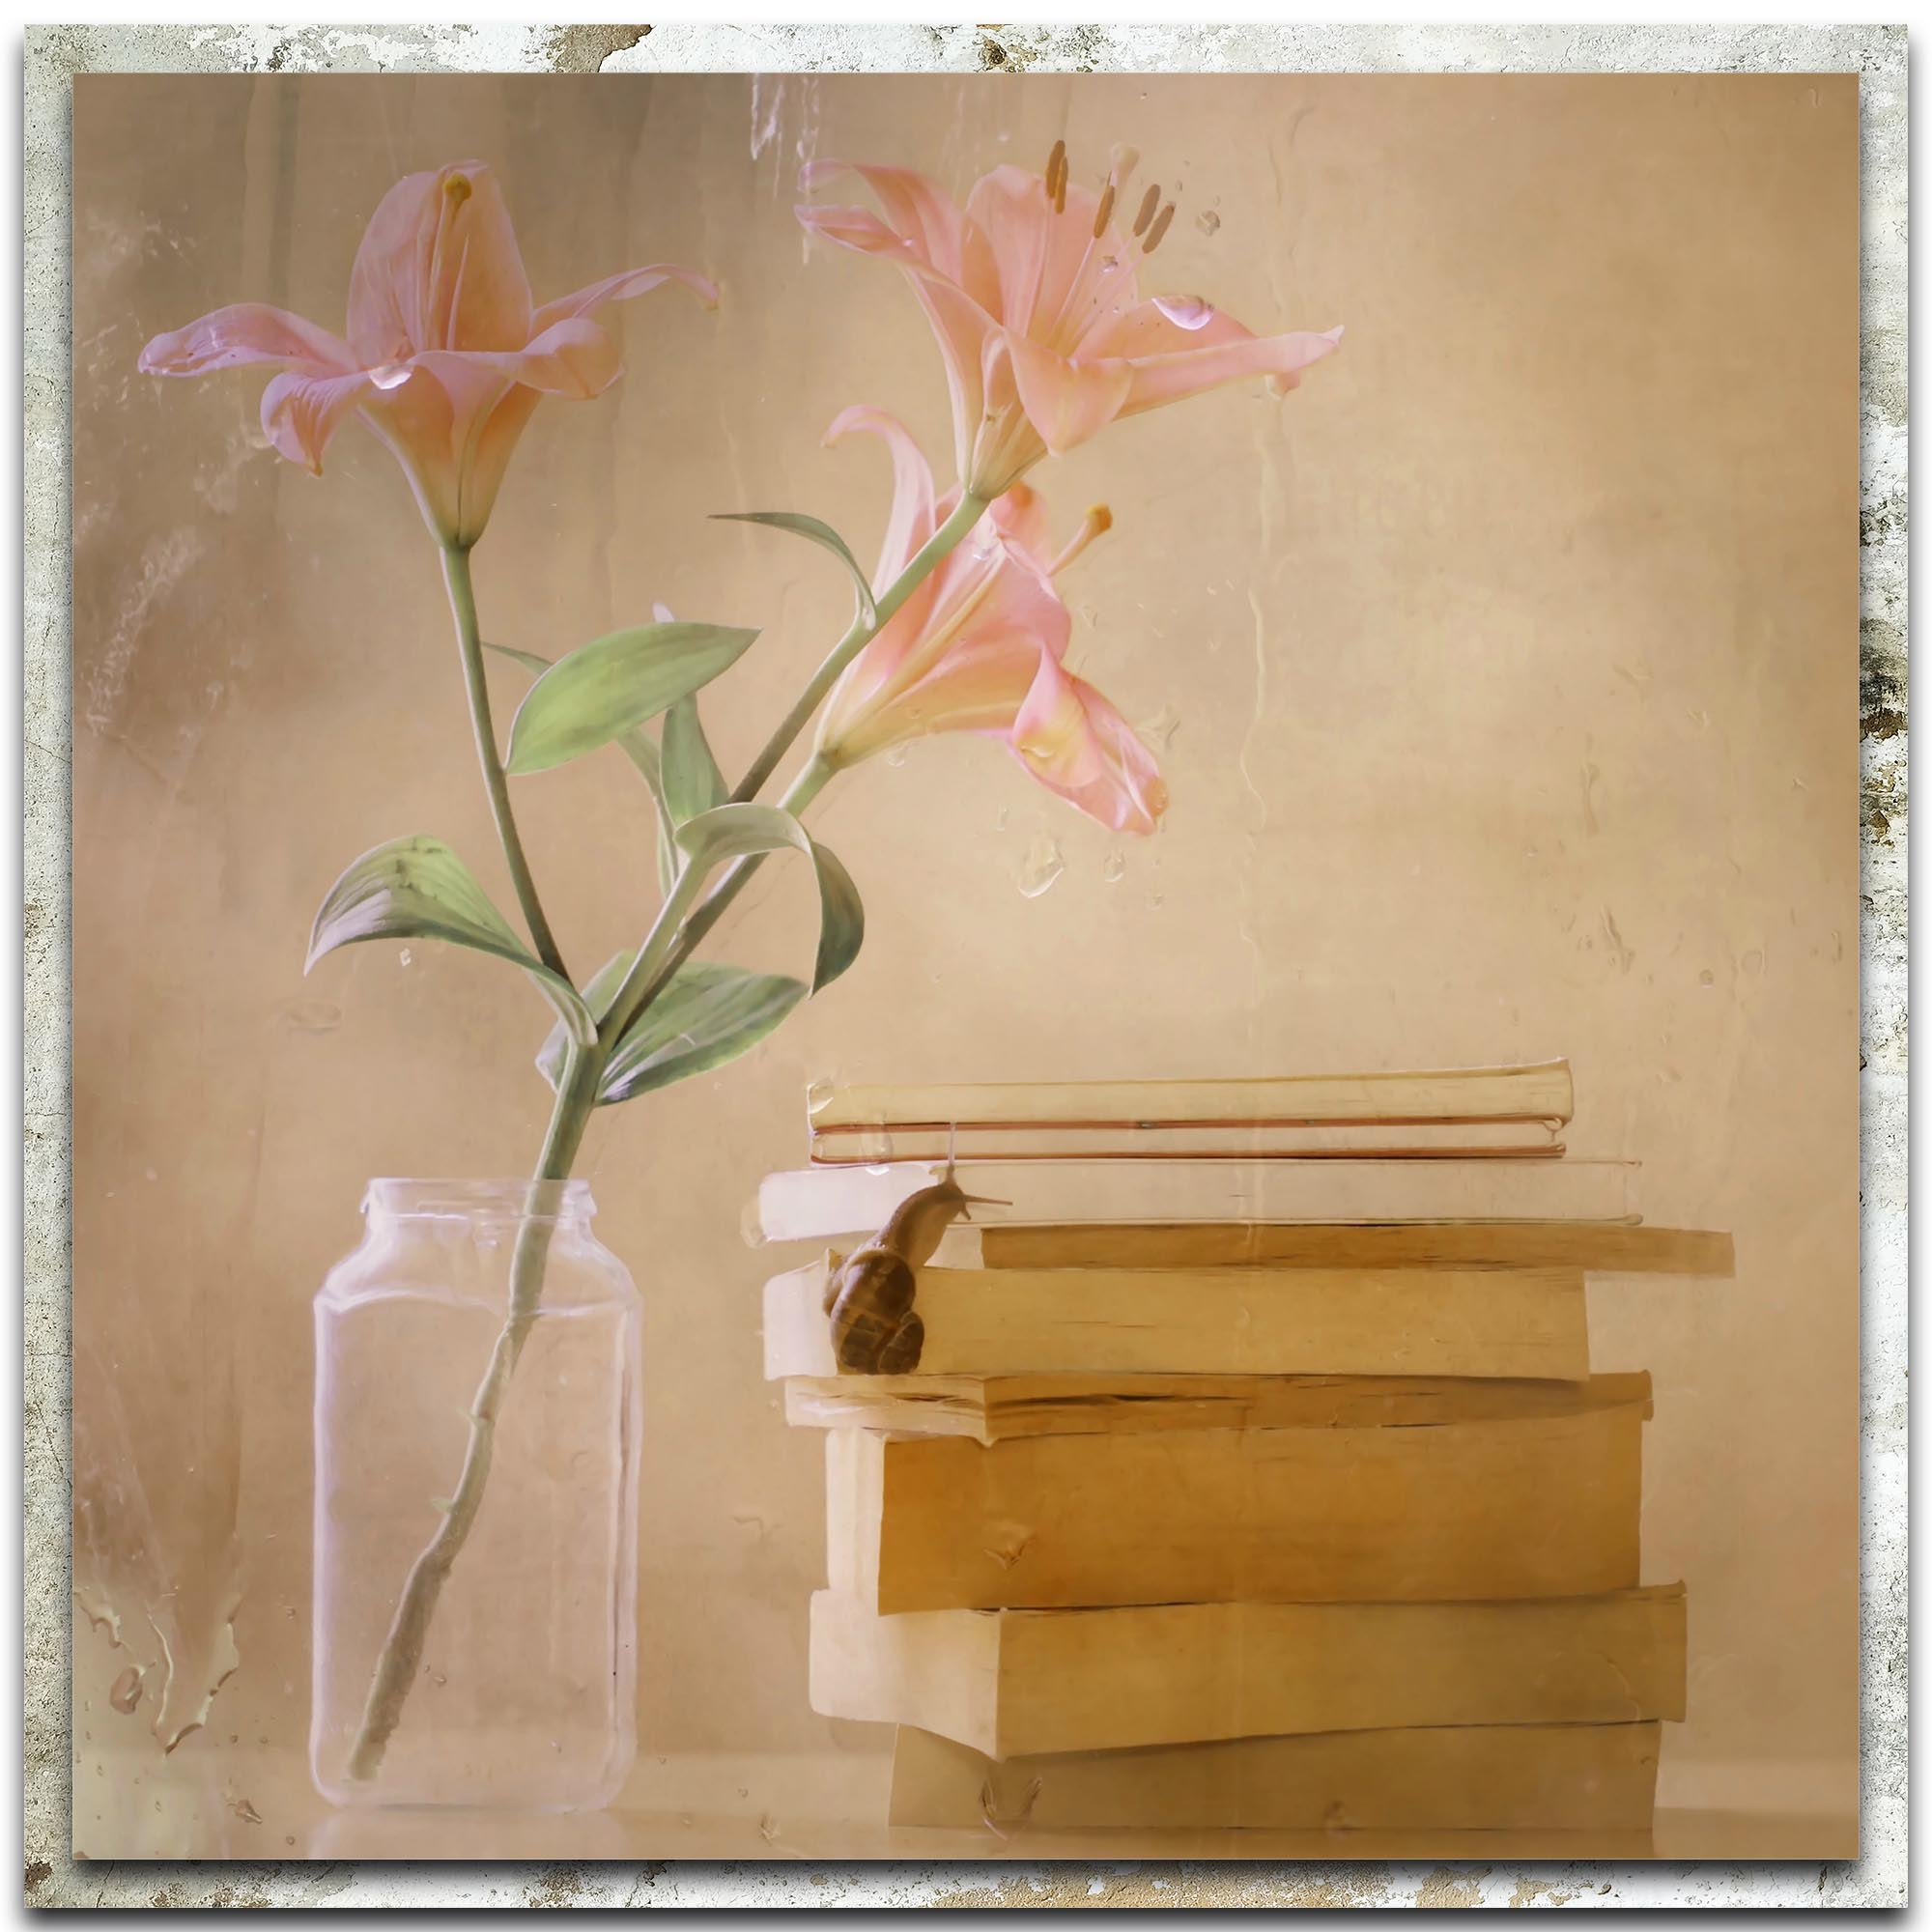 Delphine Devos 'Slowly but Surely' 22in x 22in Modern Farmhouse Floral on Metal